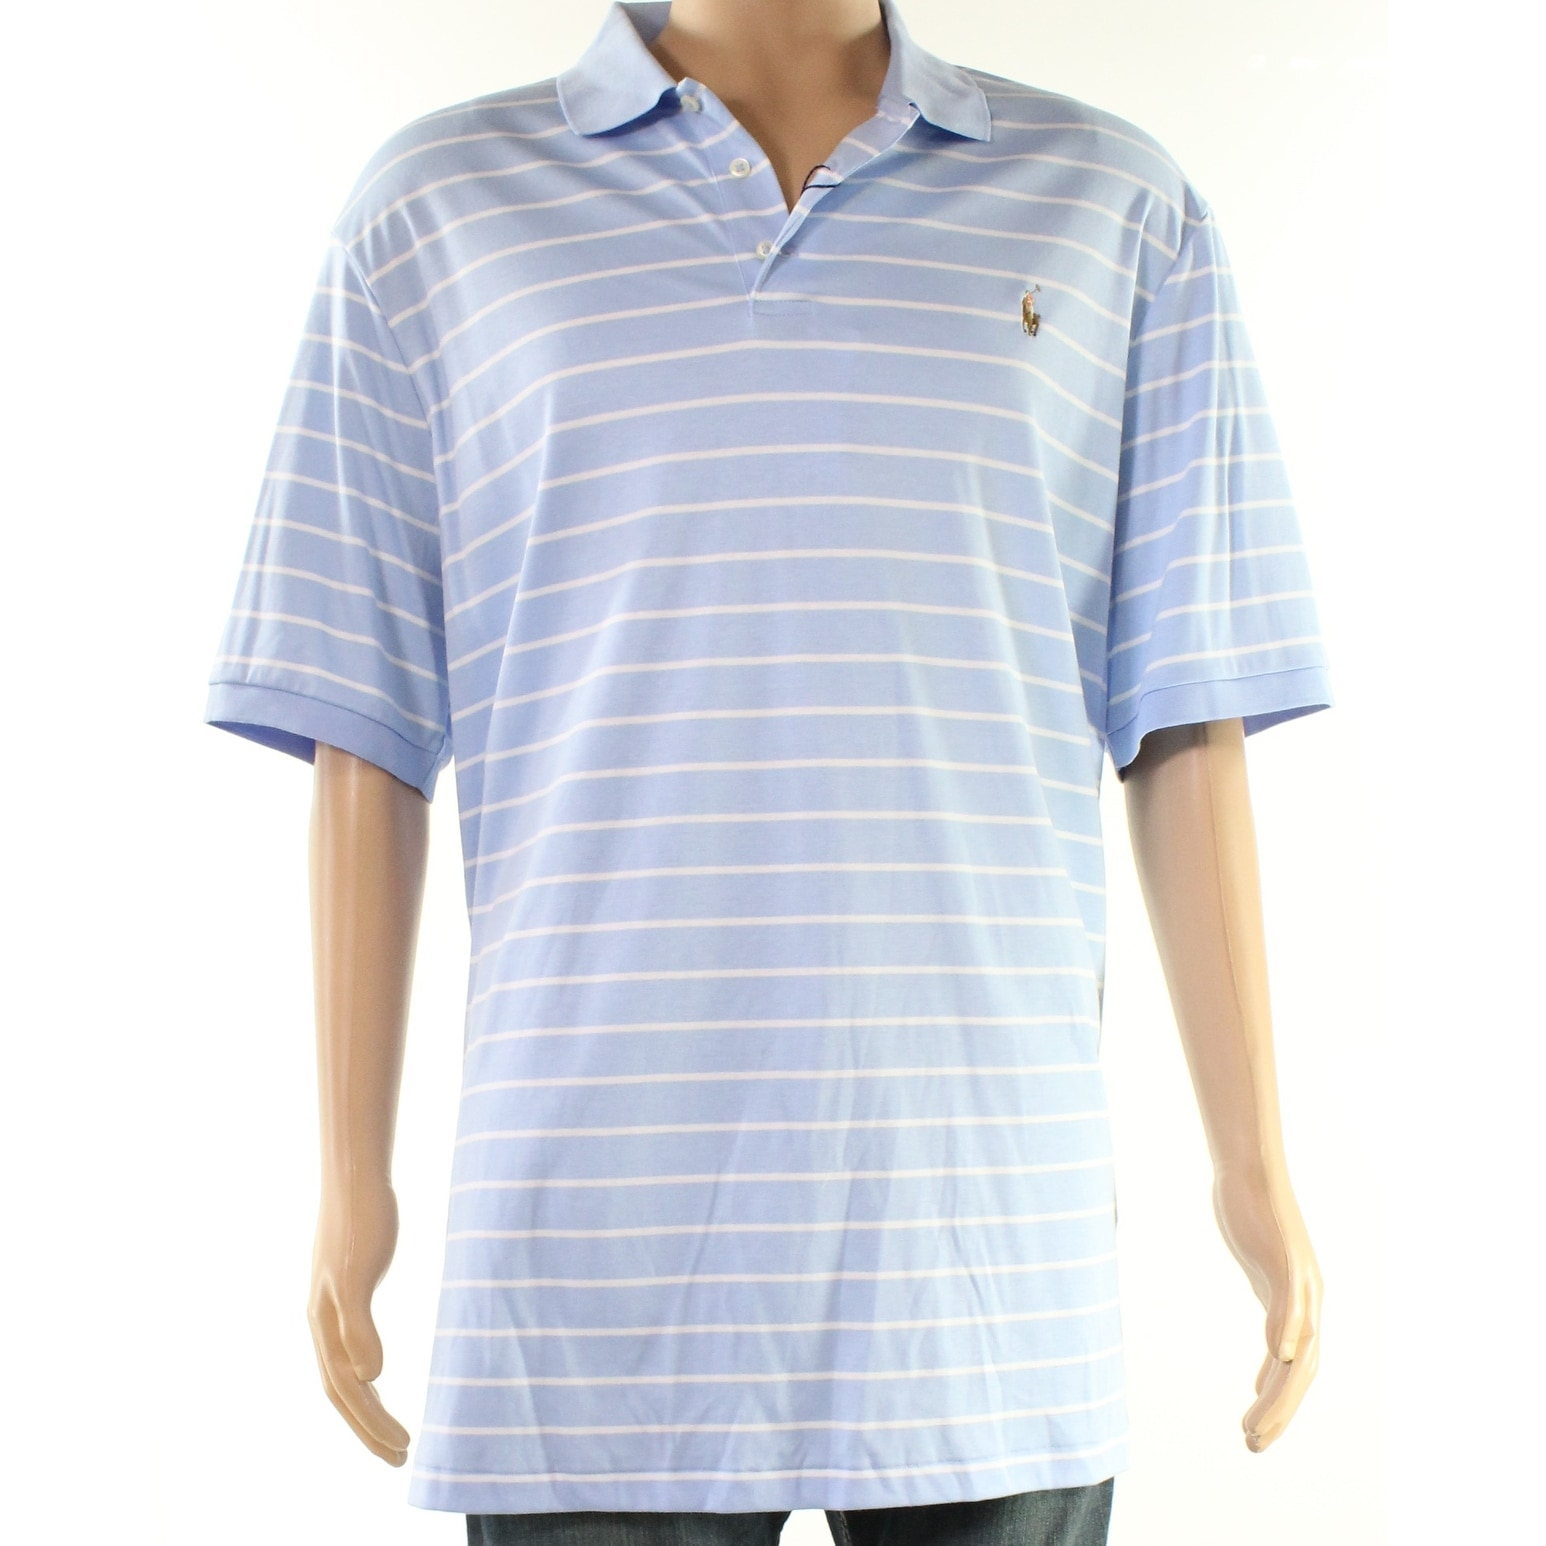 e5813f9c Polo Ralph Lauren Shirts | Find Great Men's Clothing Deals Shopping at  Overstock